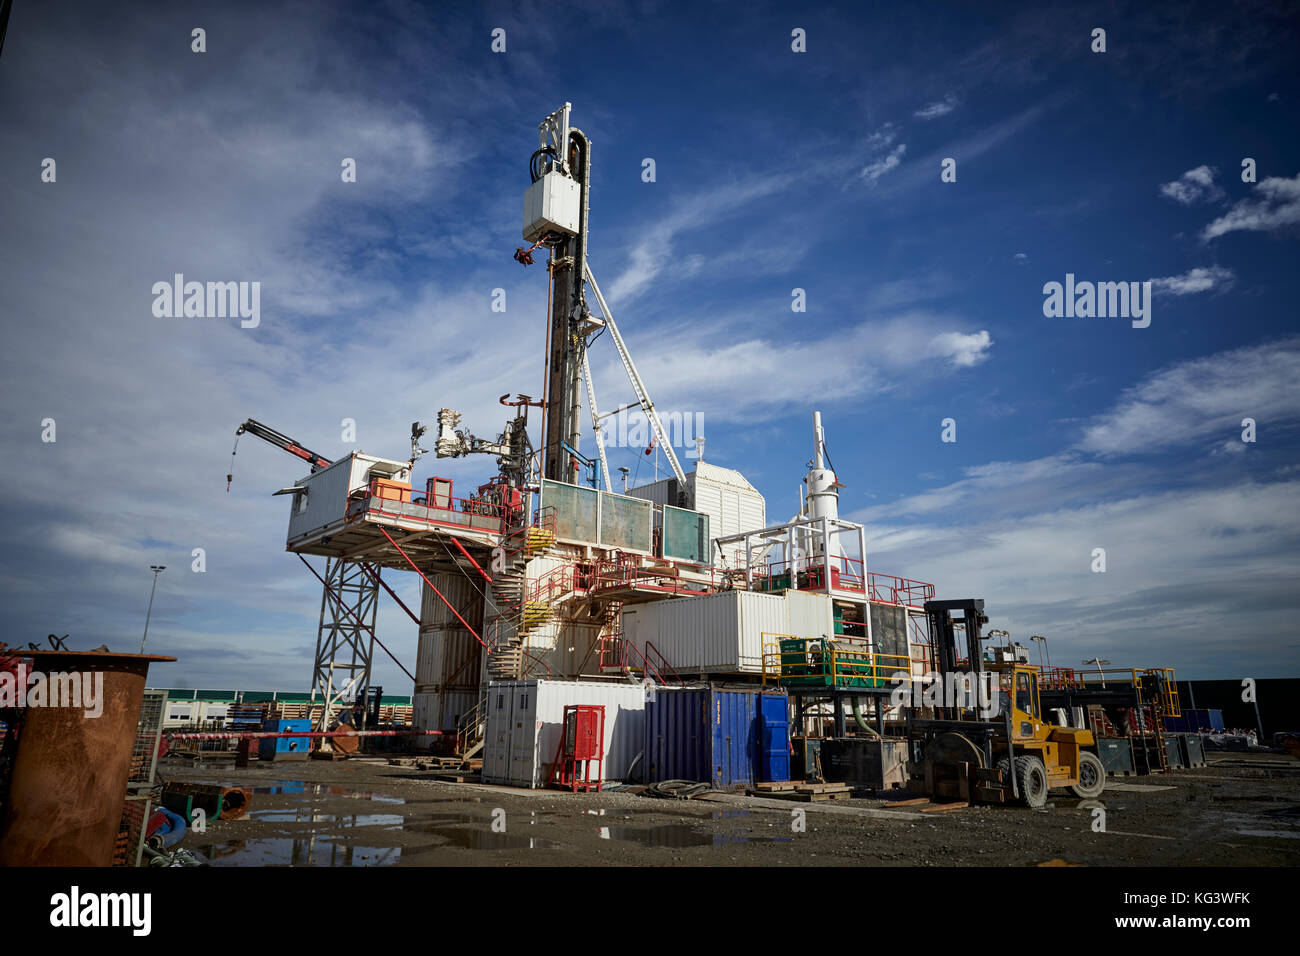 Fracking firm Cuadrilla drilling for shale gas in Lancashire, pictured the drilling rig - Stock Image